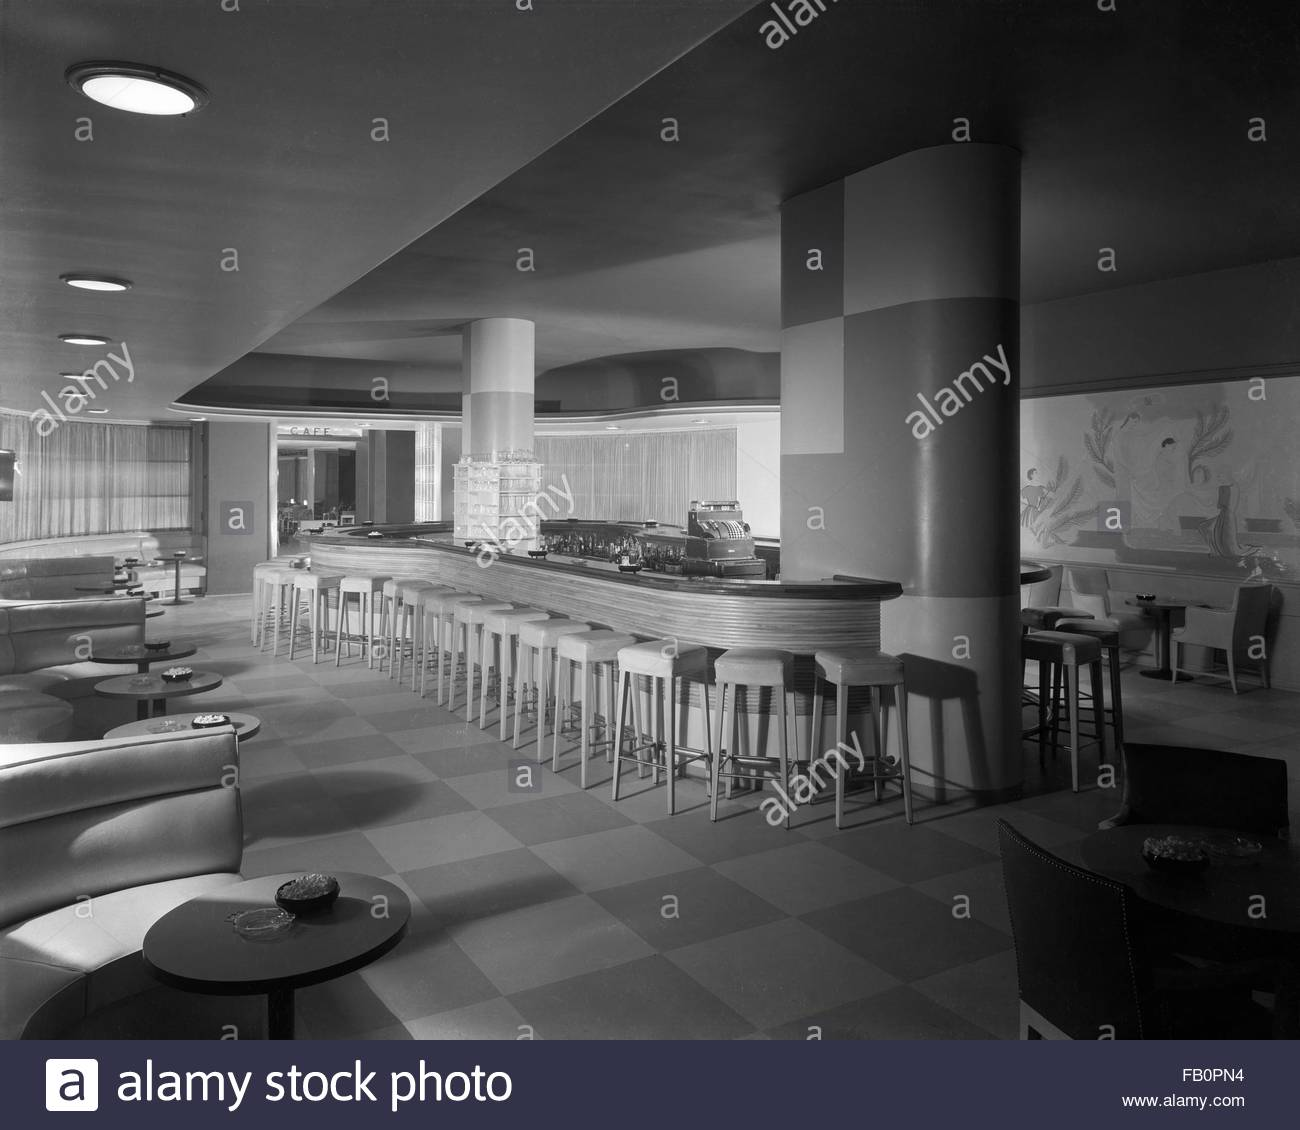 Oval Bar Stock Photos Amp Oval Bar Stock Images Alamy